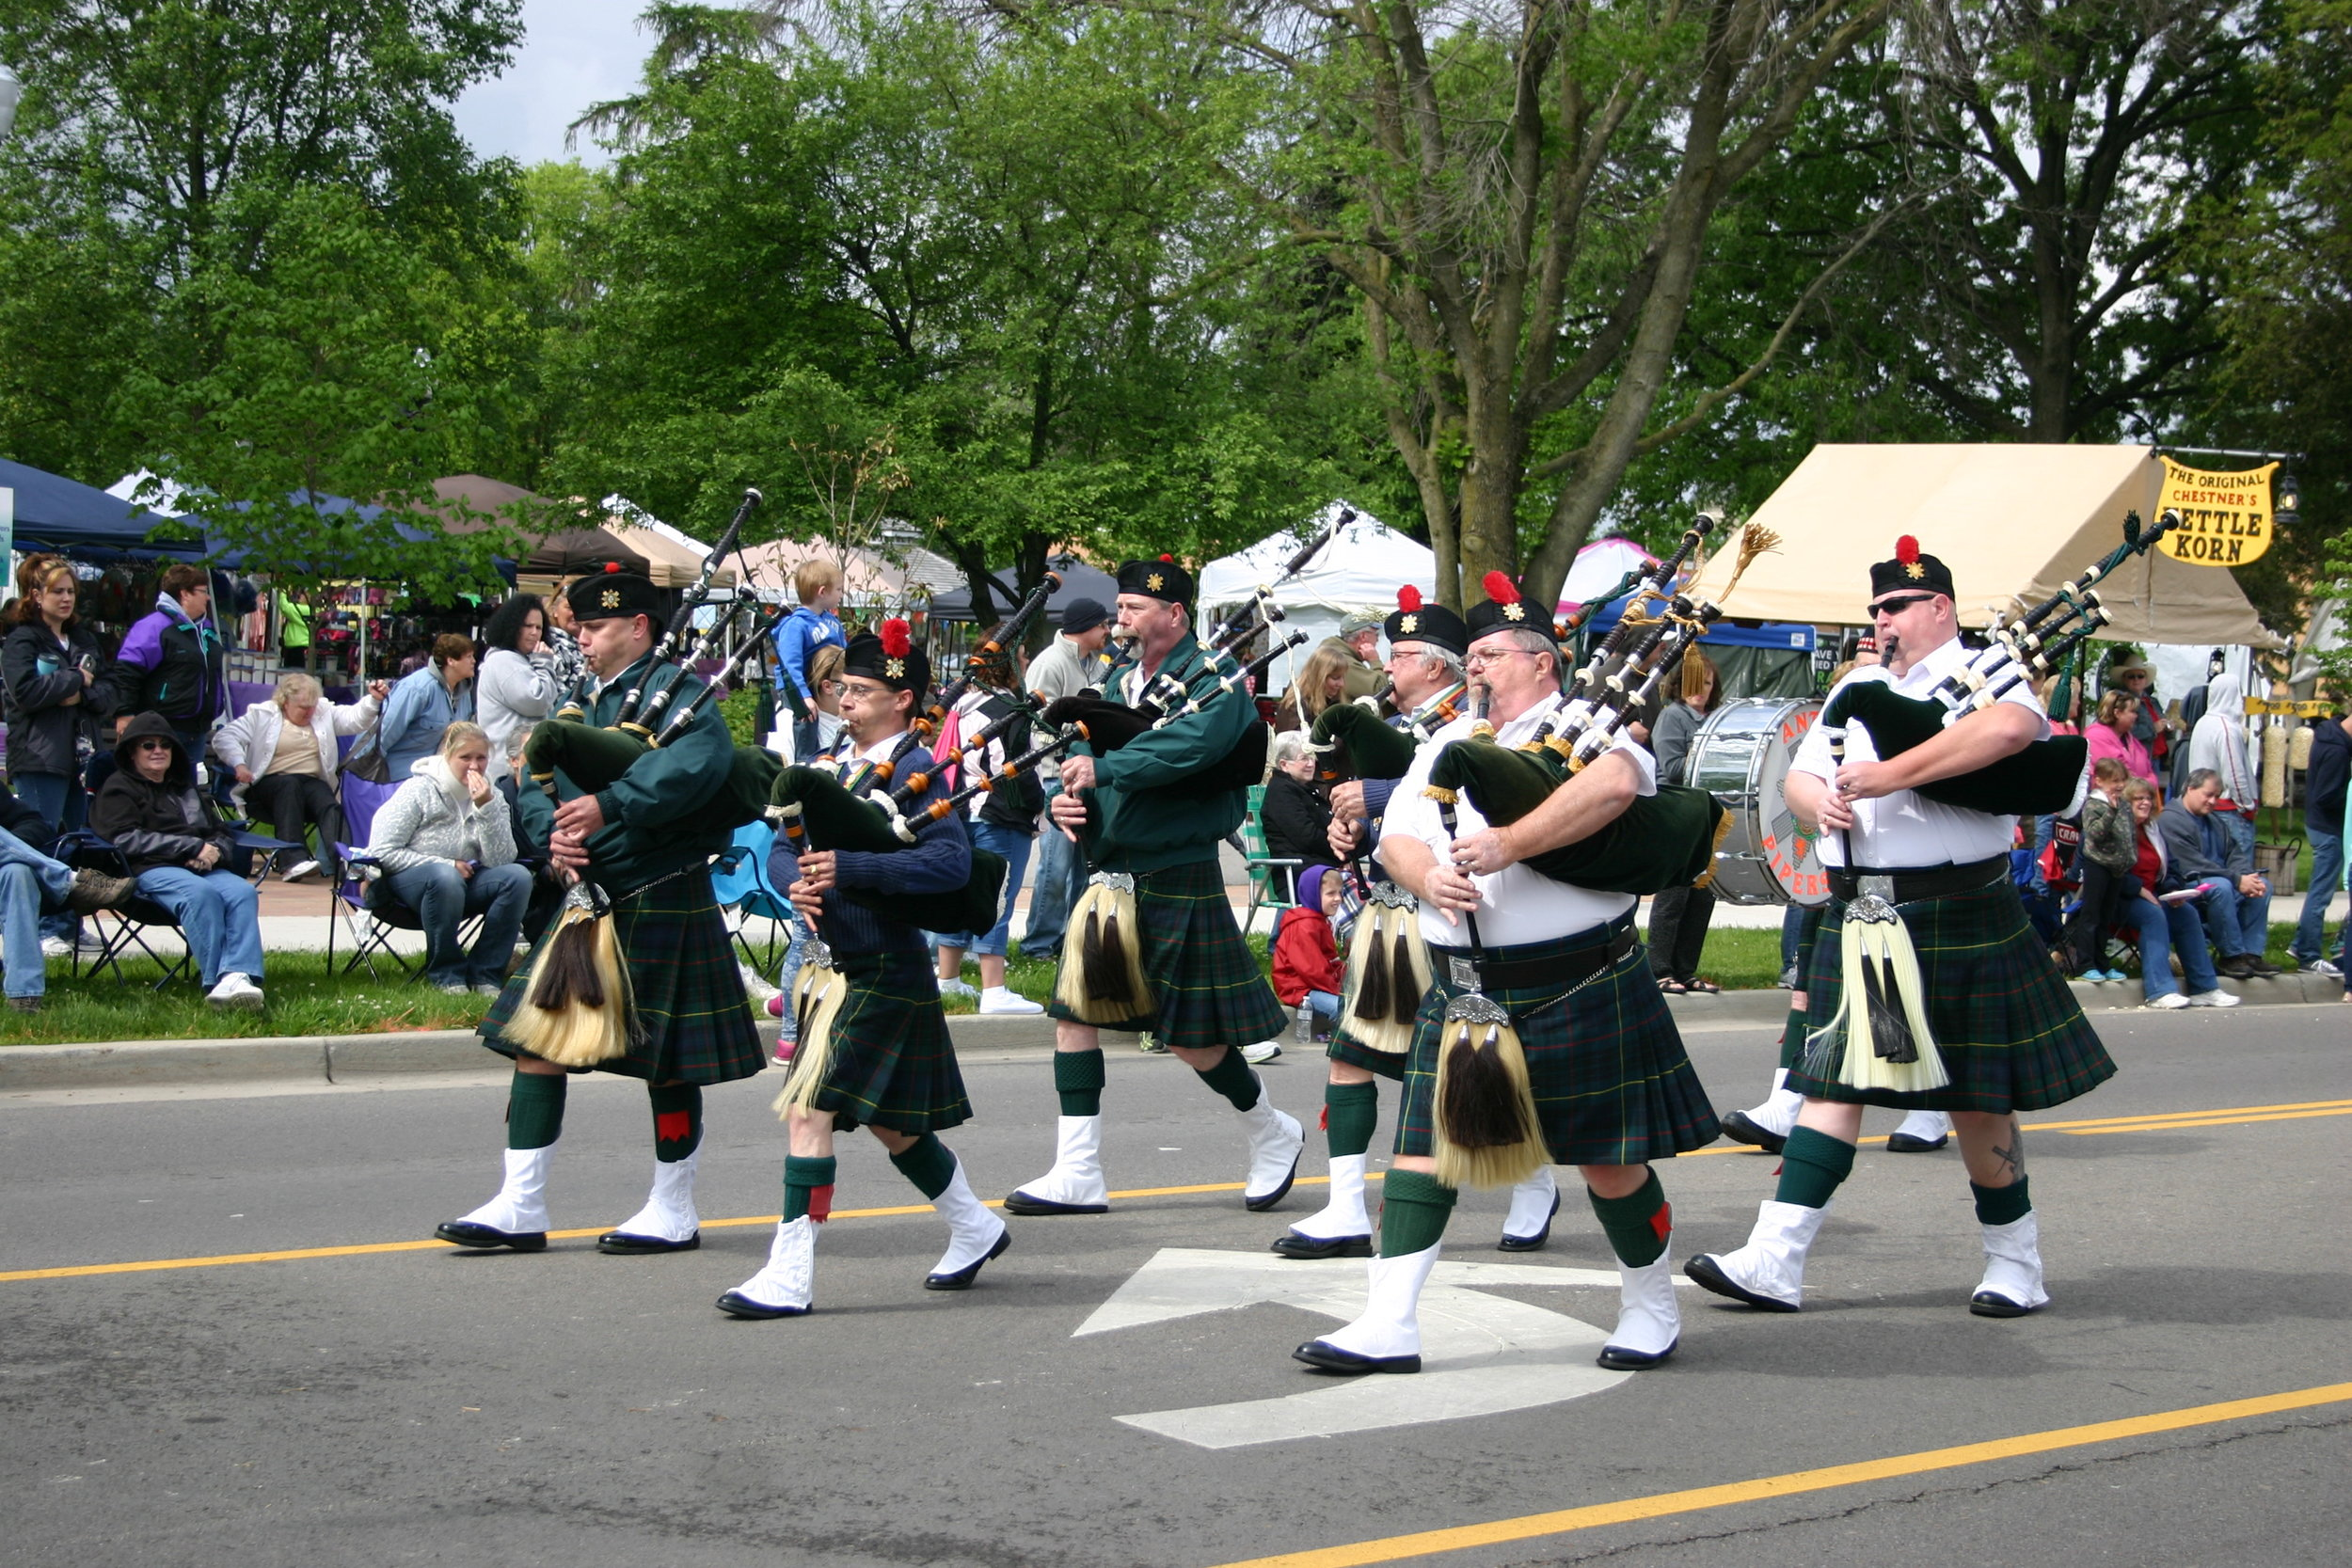 Bagpipes for the parade